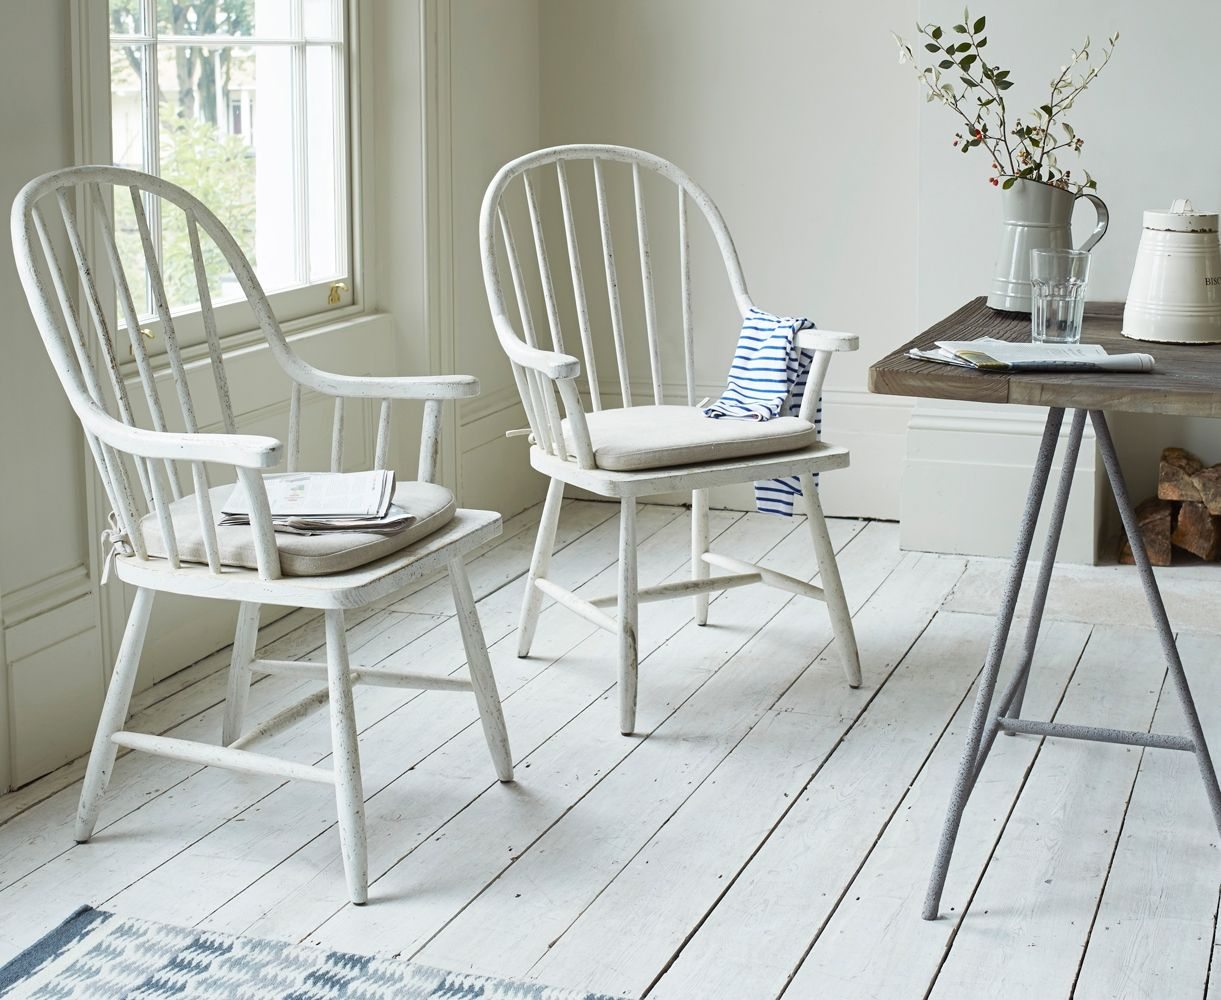 White Kitchen Chair With Arms & White Kitchen Chair With Arms | http://sodakaustica.com | Pinterest ...